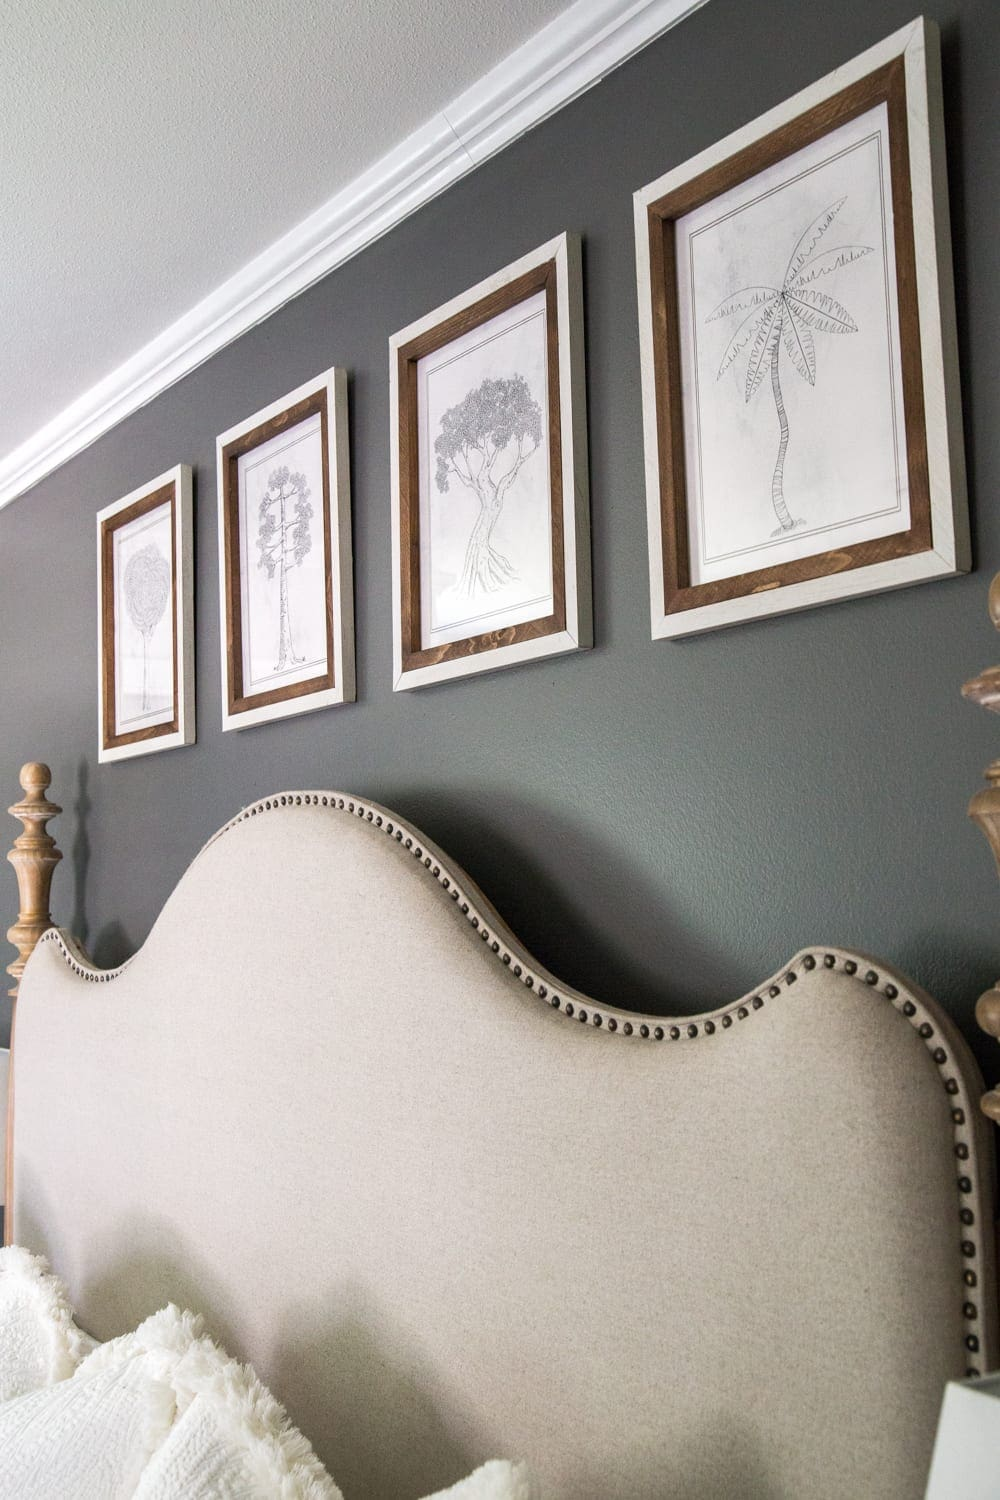 Simple, minimalist art ideas from Walmart that work perfectly in a bedroom to evoke a peaceful mood + charcoal gray wall paint